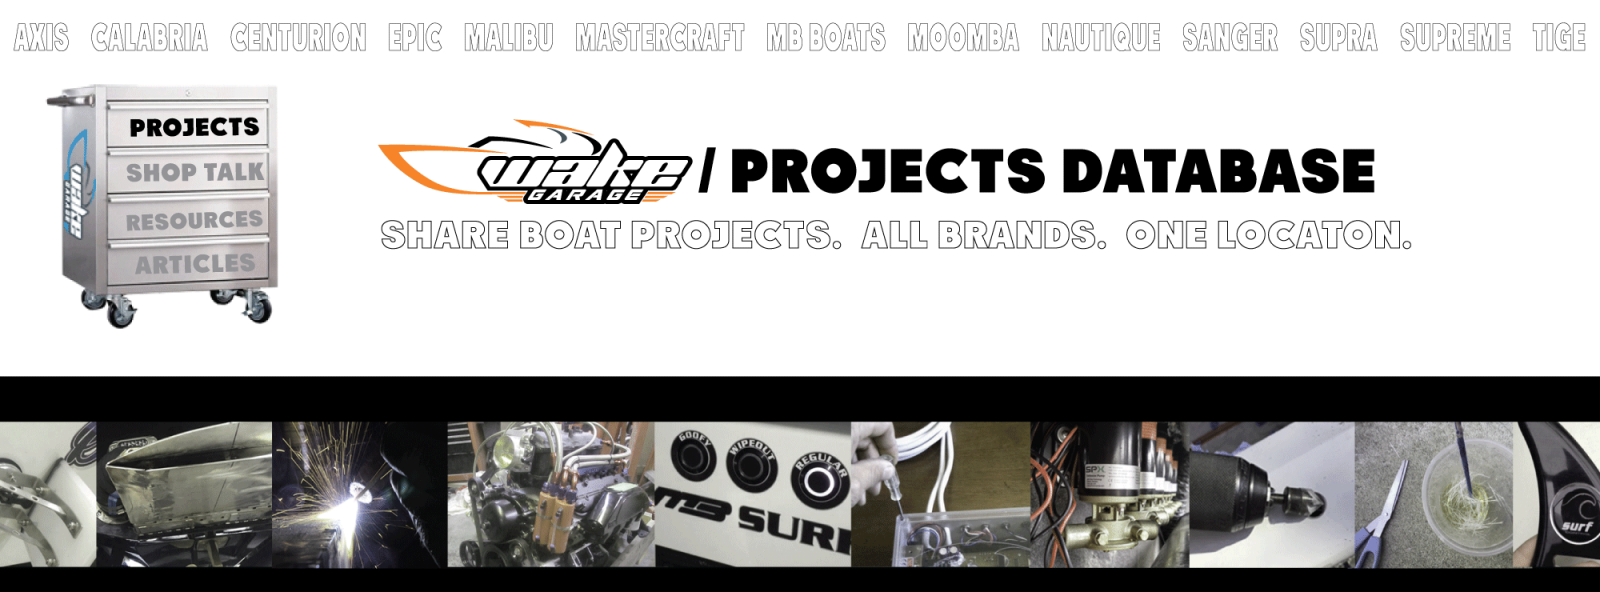 projects-database-banner3.png